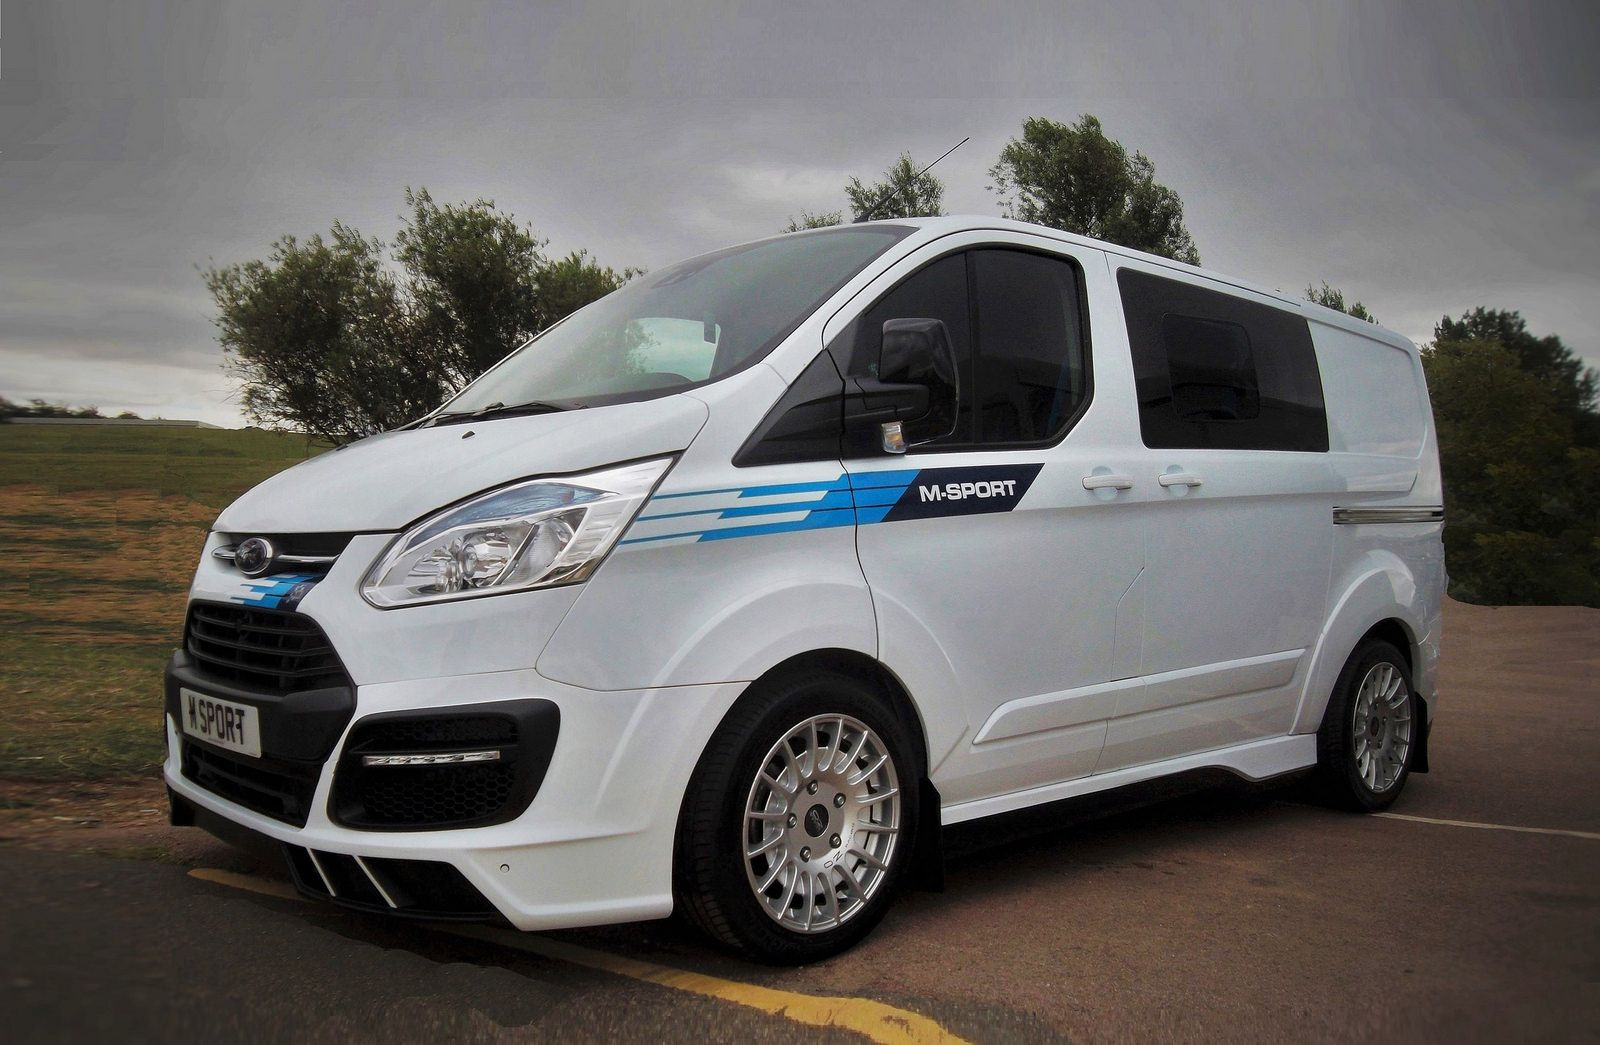 Ford Transit M Sport Limited Edition By Van Sport Ford Transit Vans Ford